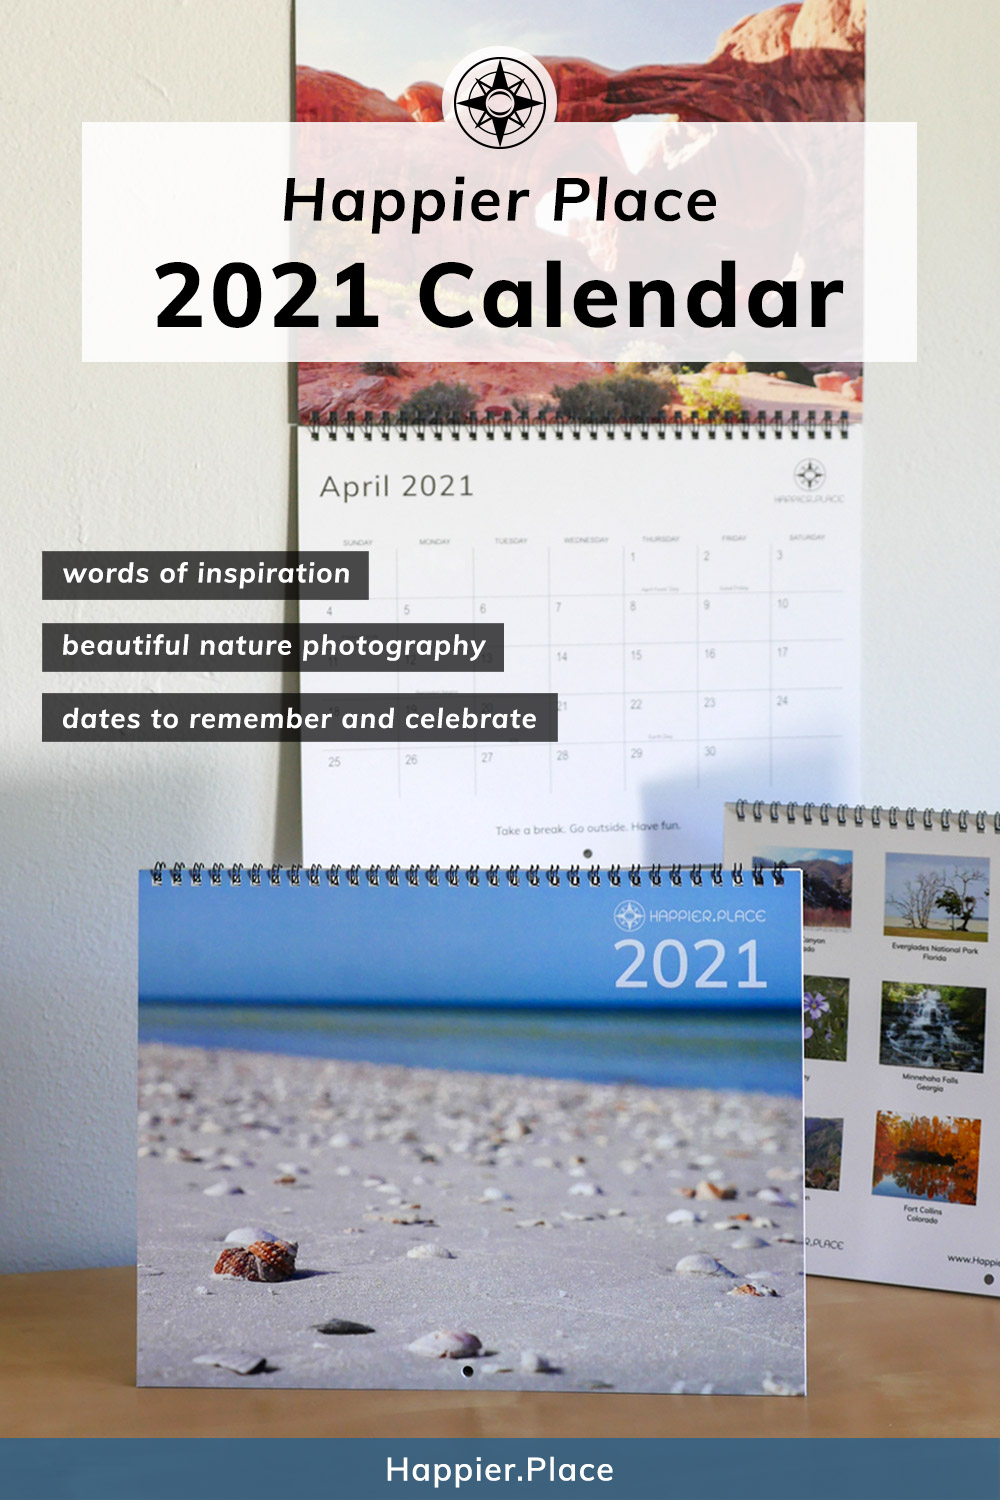 So Ready for a Happier Year: 2021 Happier Place Calendar